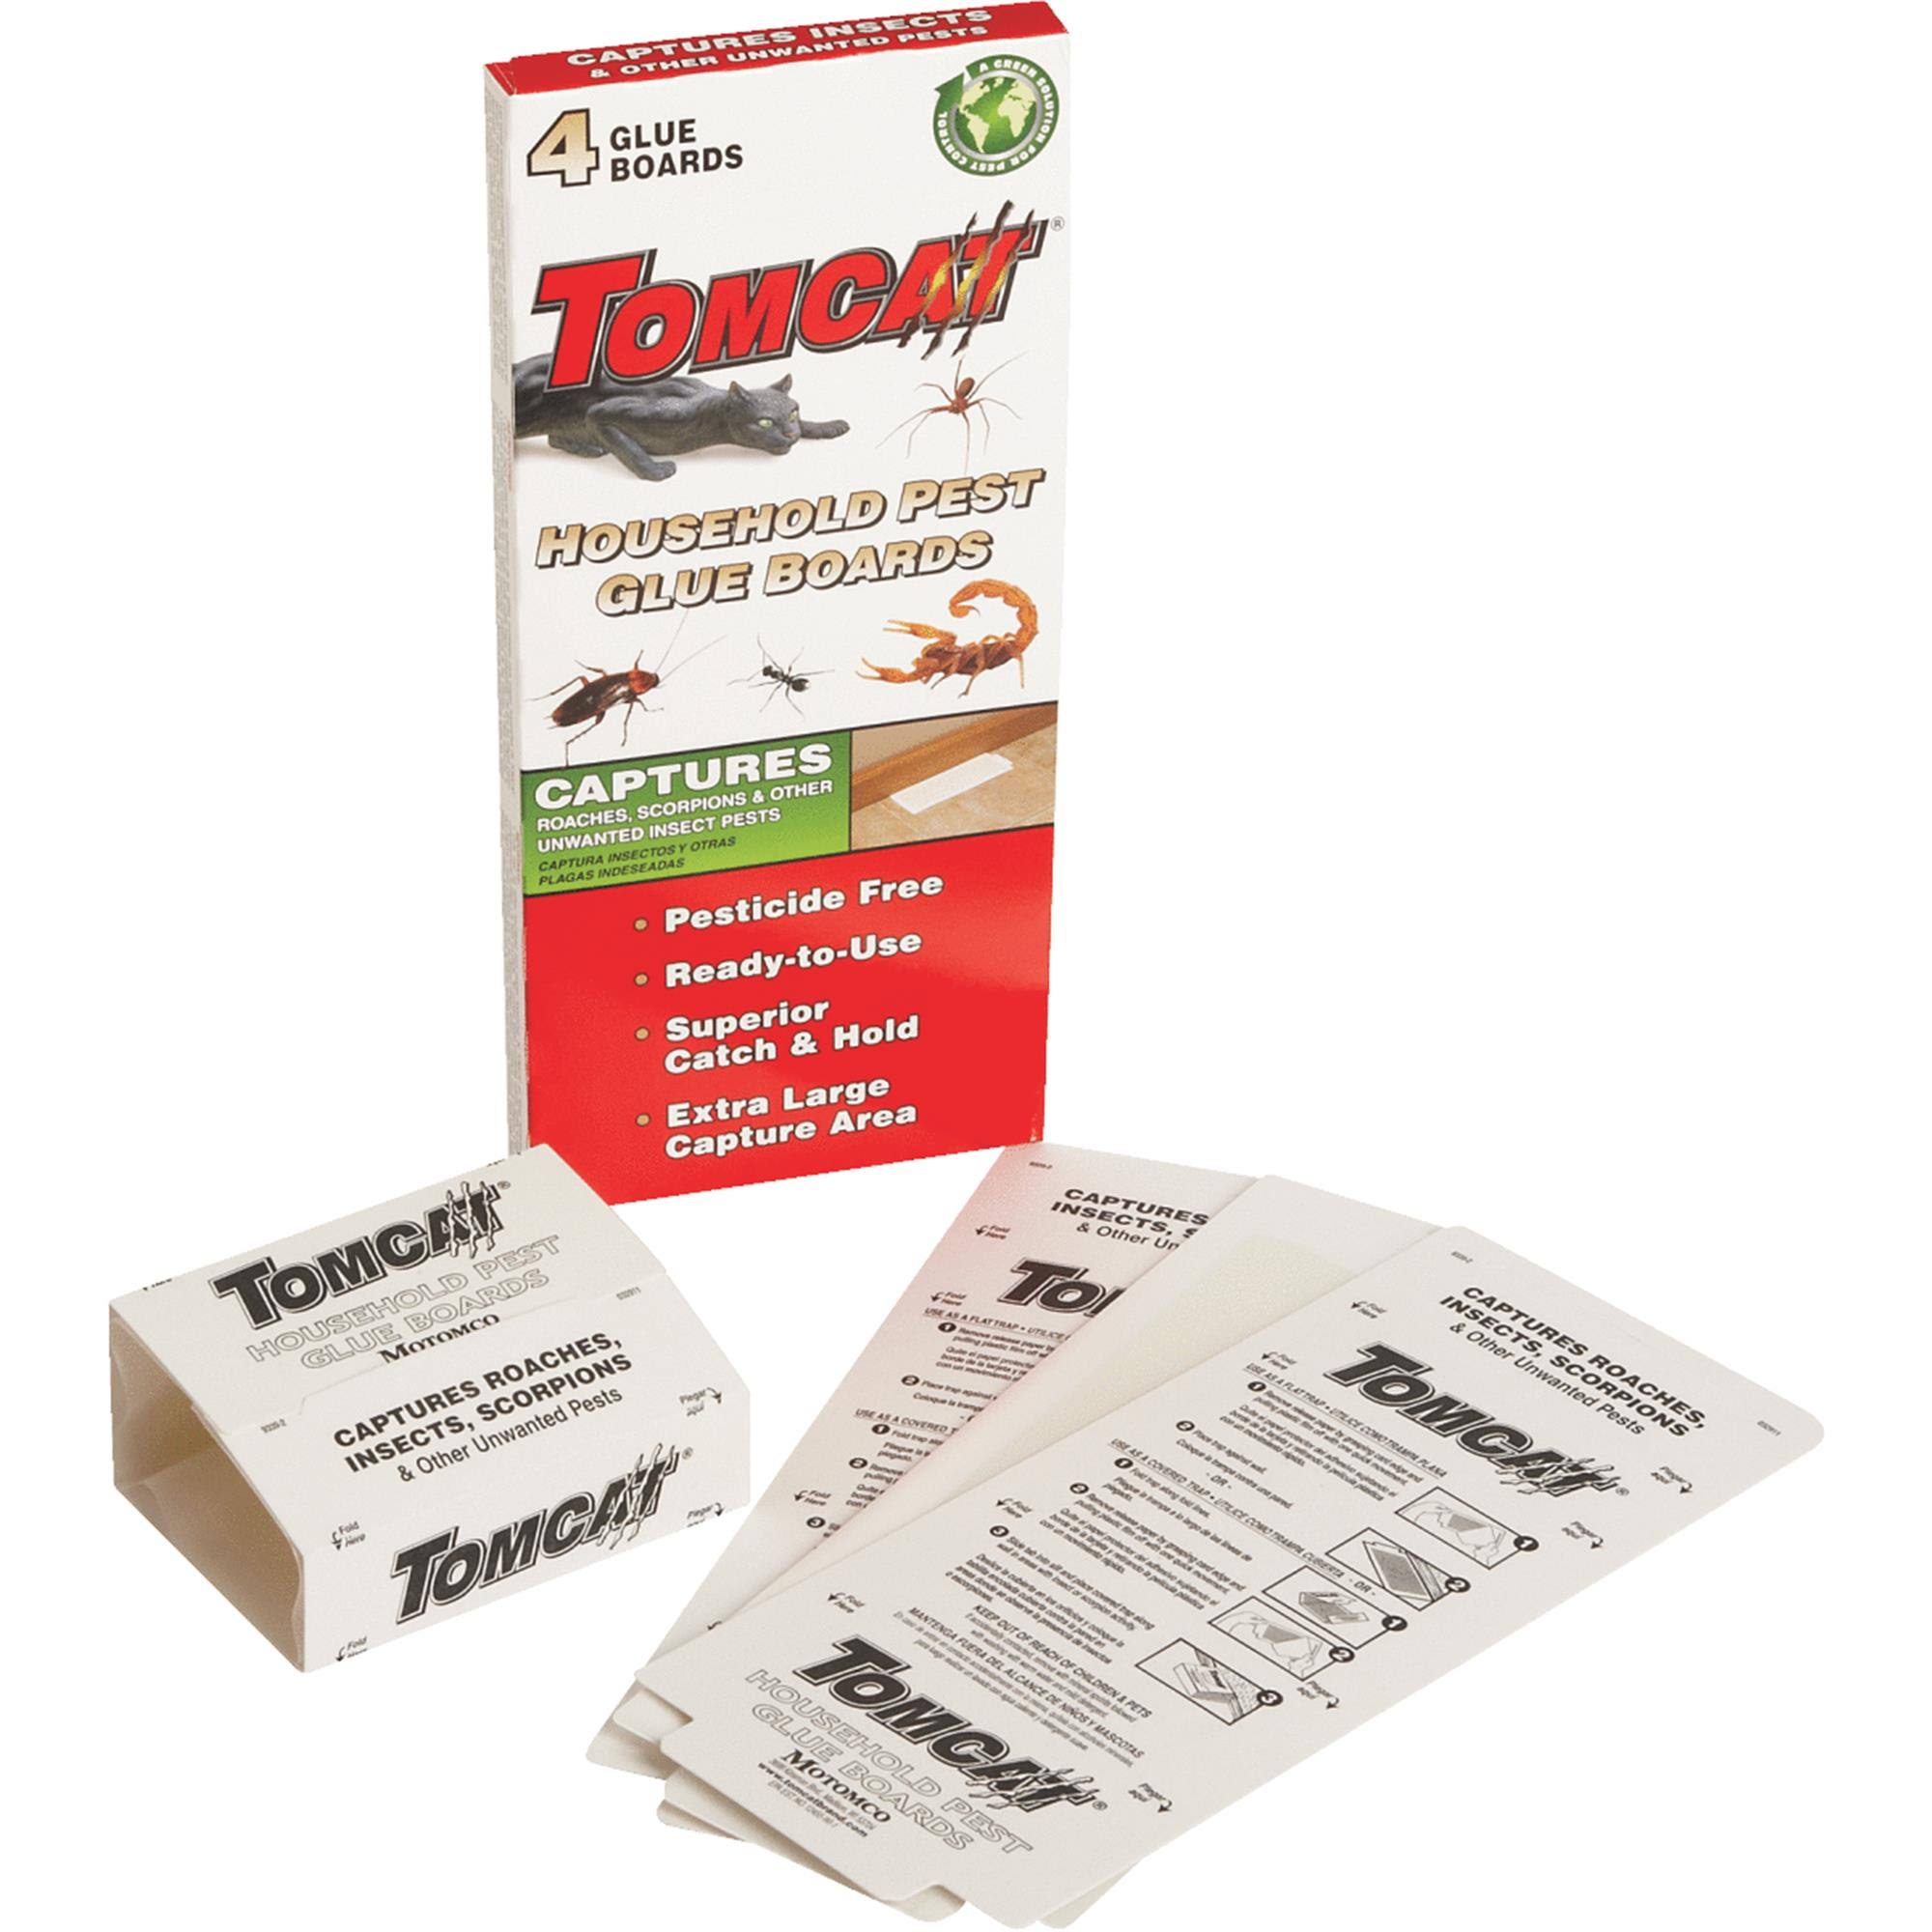 Tomcat 4524218 Household Pest Glue Boards, 4-Pack